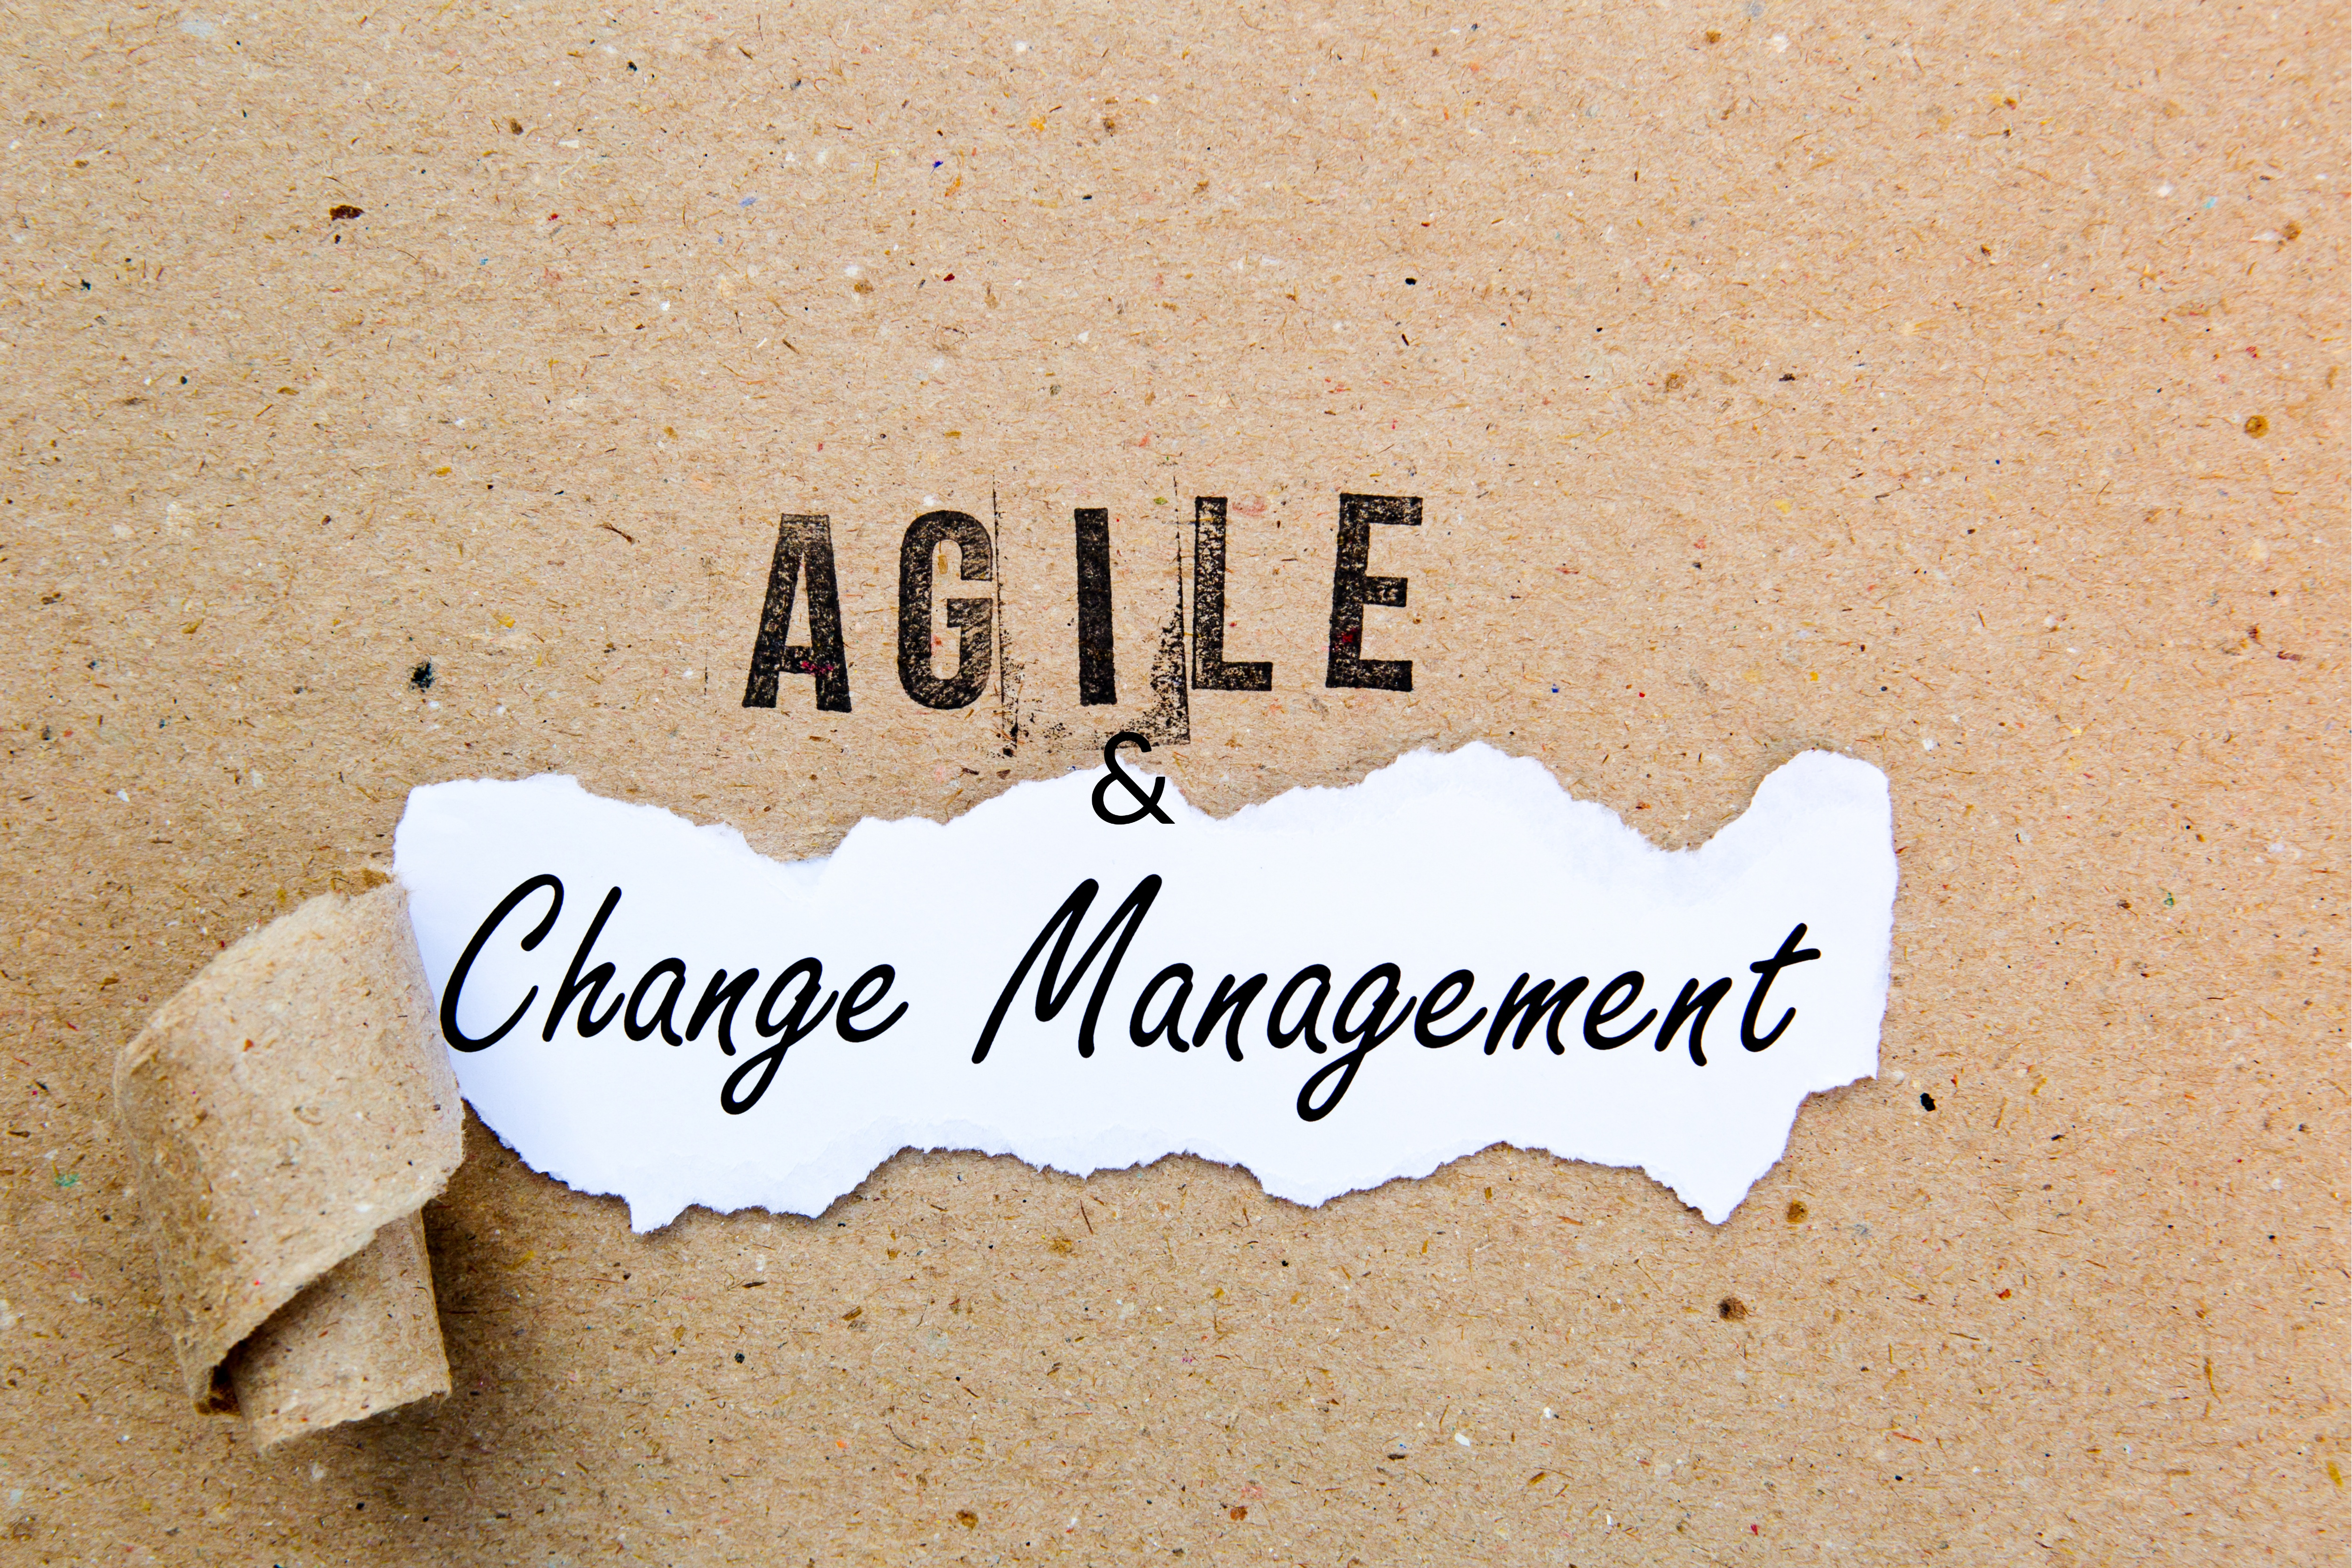 Change Management and Agile